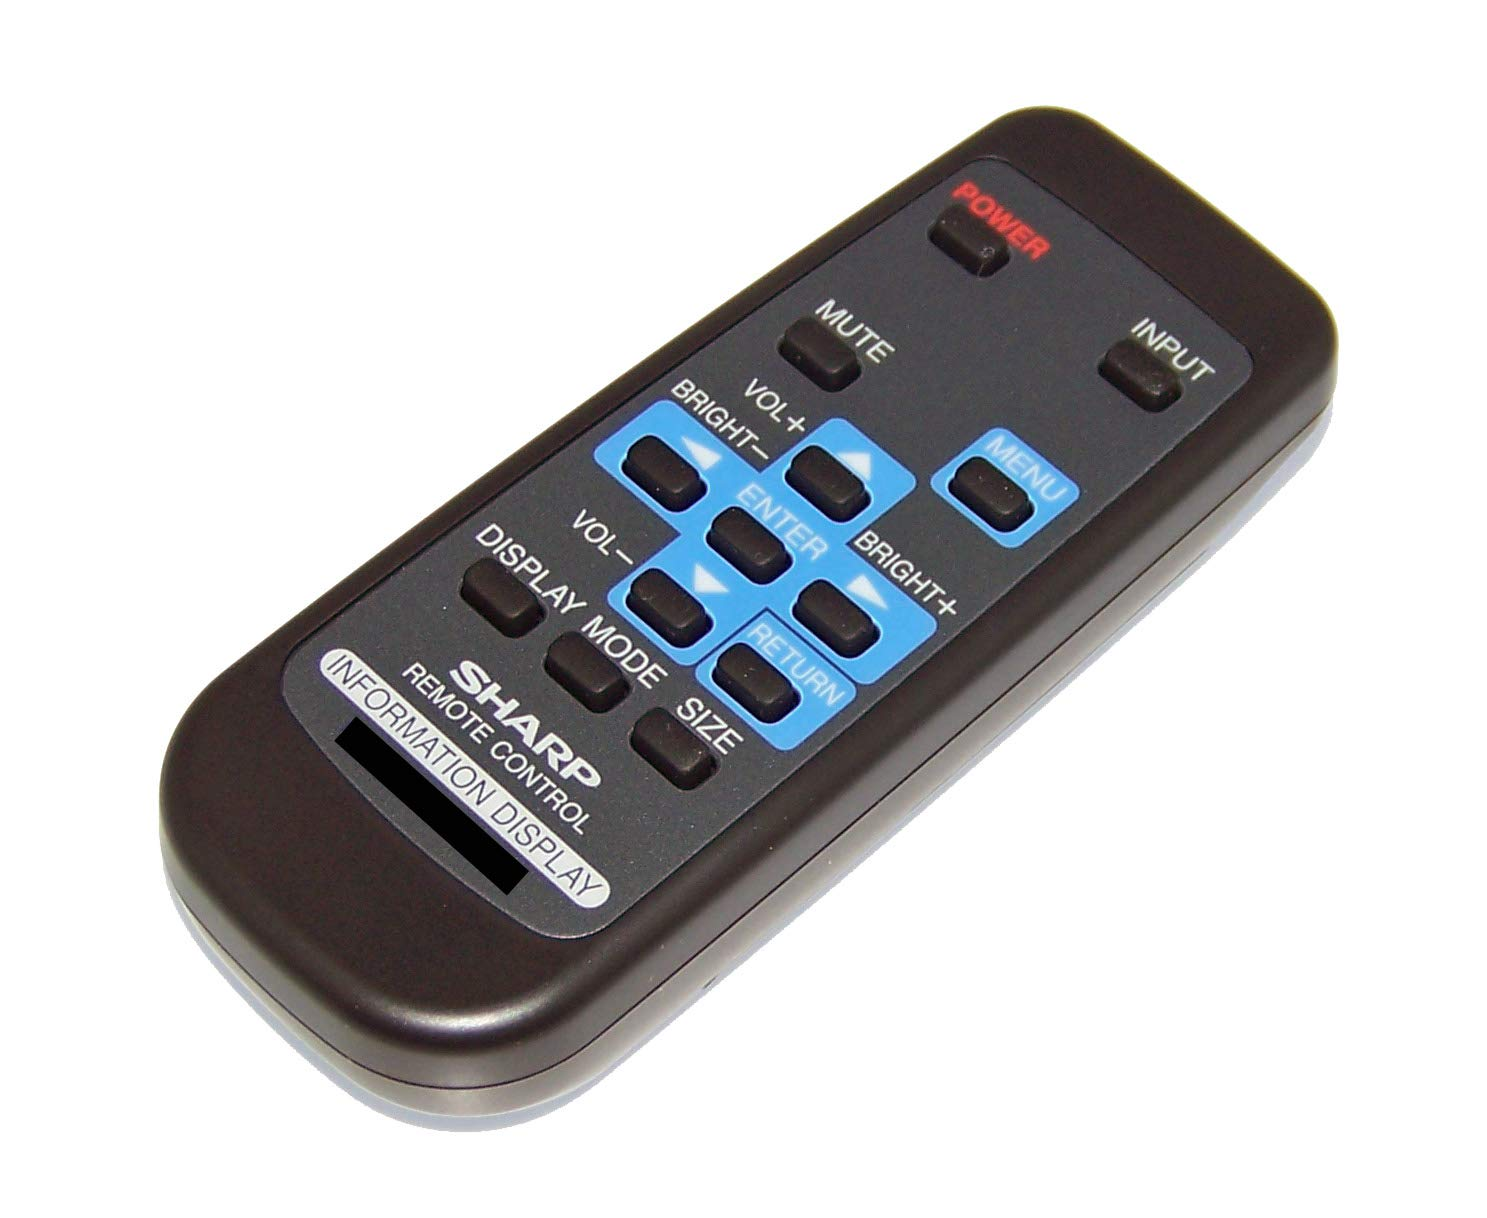 OEM Sharp Remote Control Originally Shipped with PNE603, PN-E603, PNE703, PN-E703, PNH701, PN-H701